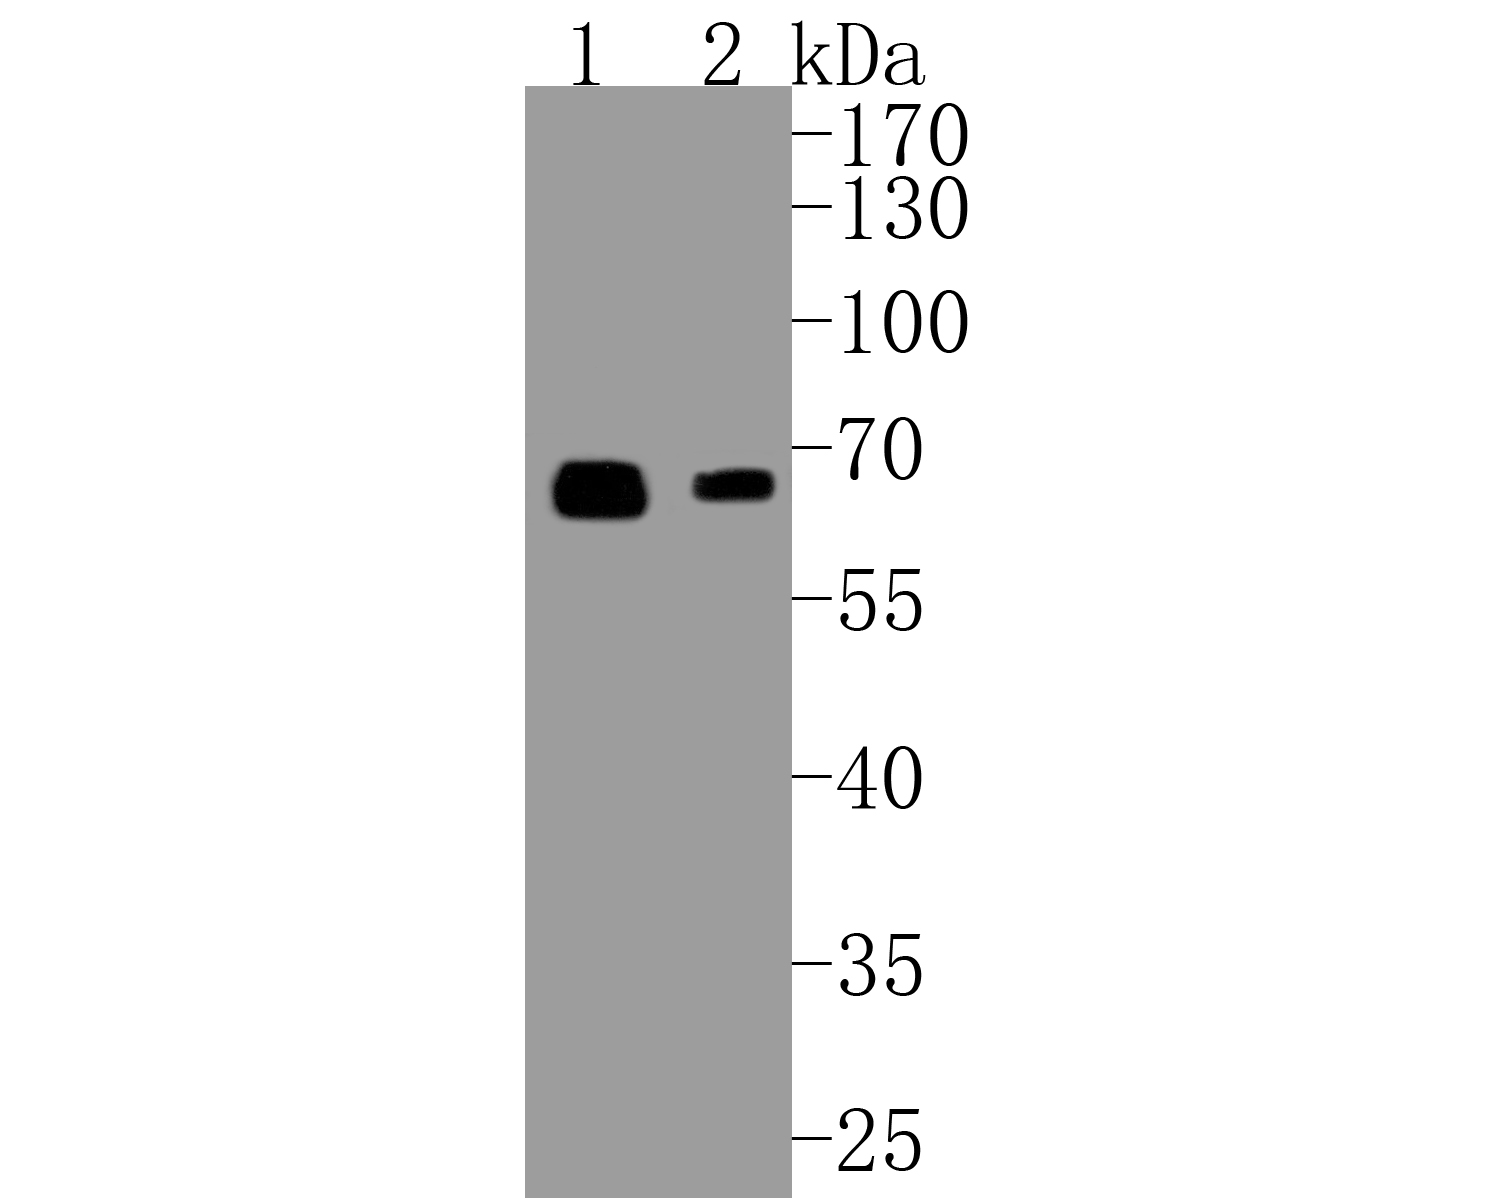 Western blot analysis of Smad4 on different lysates. Proteins were transferred to a PVDF membrane and blocked with 5% BSA in PBS for 1 hour at room temperature. The primary antibody (ET1604-12, 1/500) was used in 5% BSA at room temperature for 2 hours. Goat Anti-Rabbit IgG - HRP Secondary Antibody (HA1001) at 1:5,000 dilution was used for 1 hour at room temperature. Positive control:  Lane 1: PC-12 cell lysate Lane 2: SH-SY5Y cell lysate